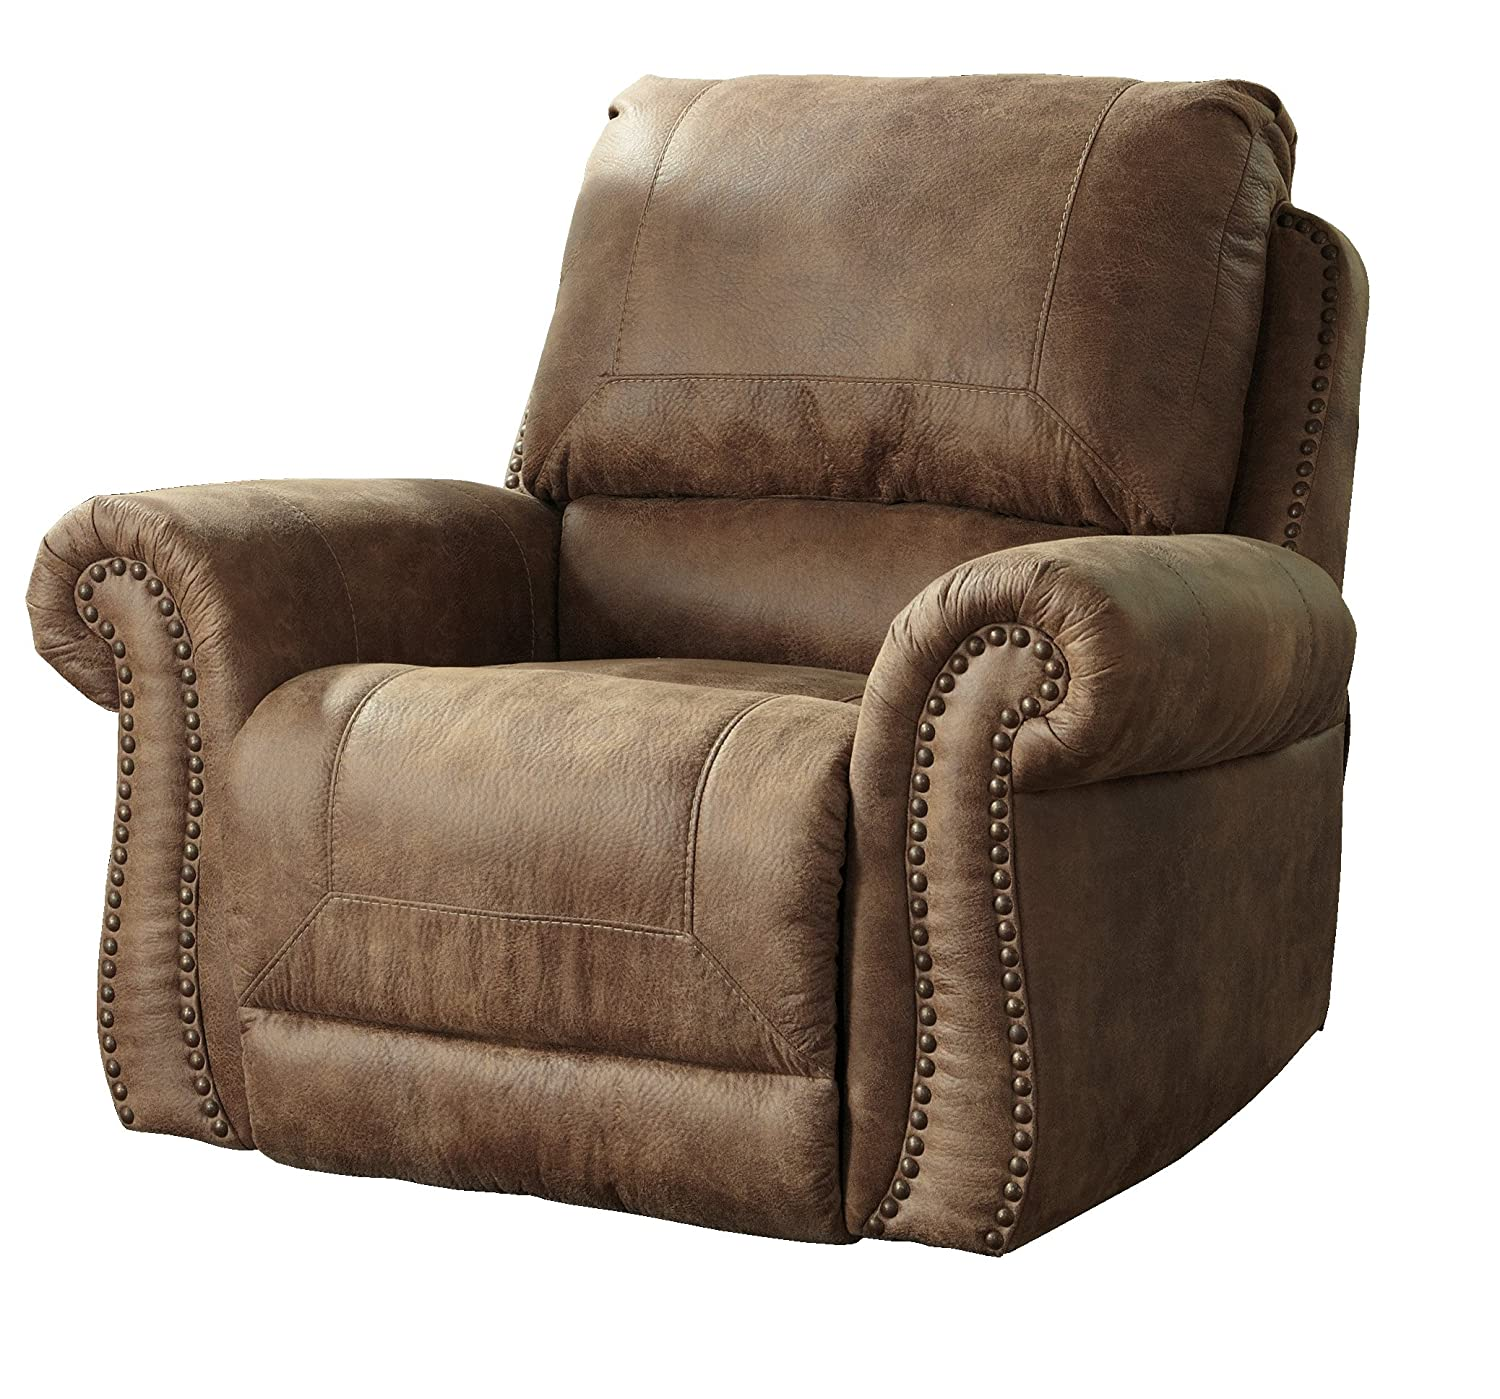 rated chair lbs leather up chairs recliners the men s a duty childrens lounge ordable to big heavy recliner best for crammed what top reading